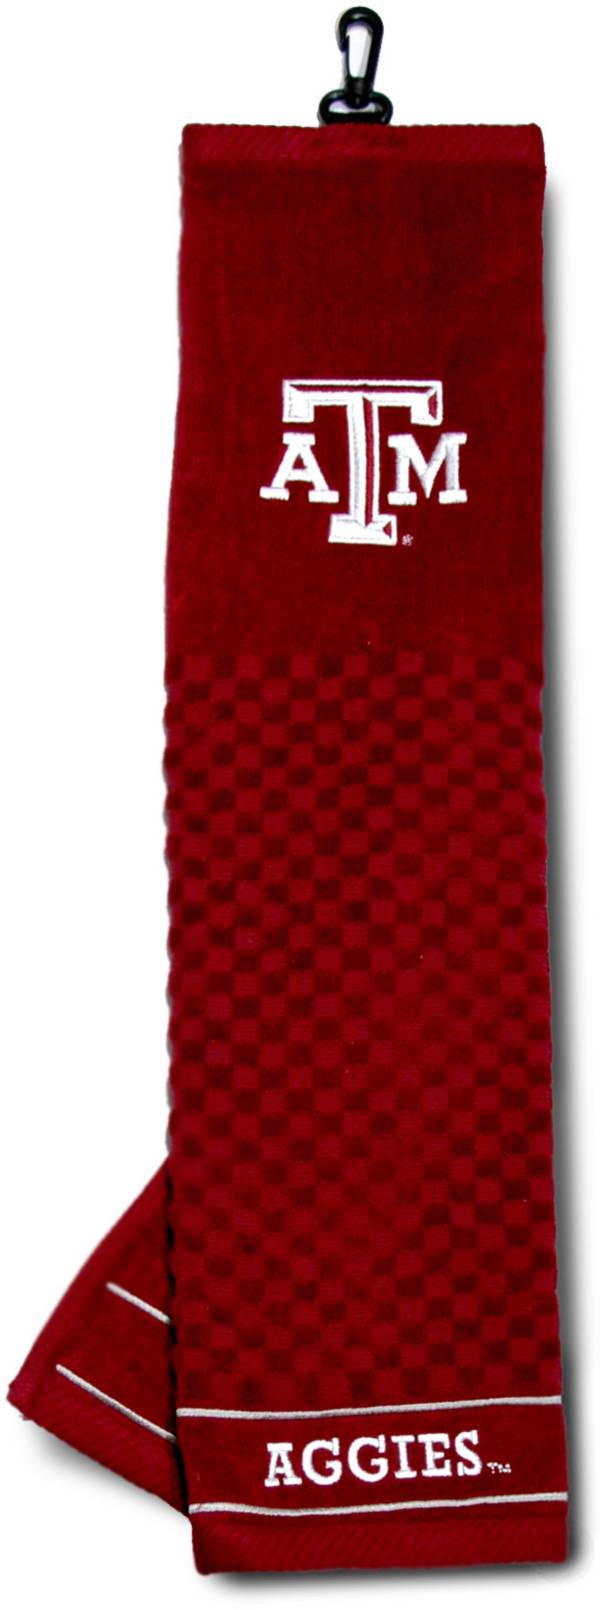 Team Golf Texas A&M Aggies Embroidered Towel product image